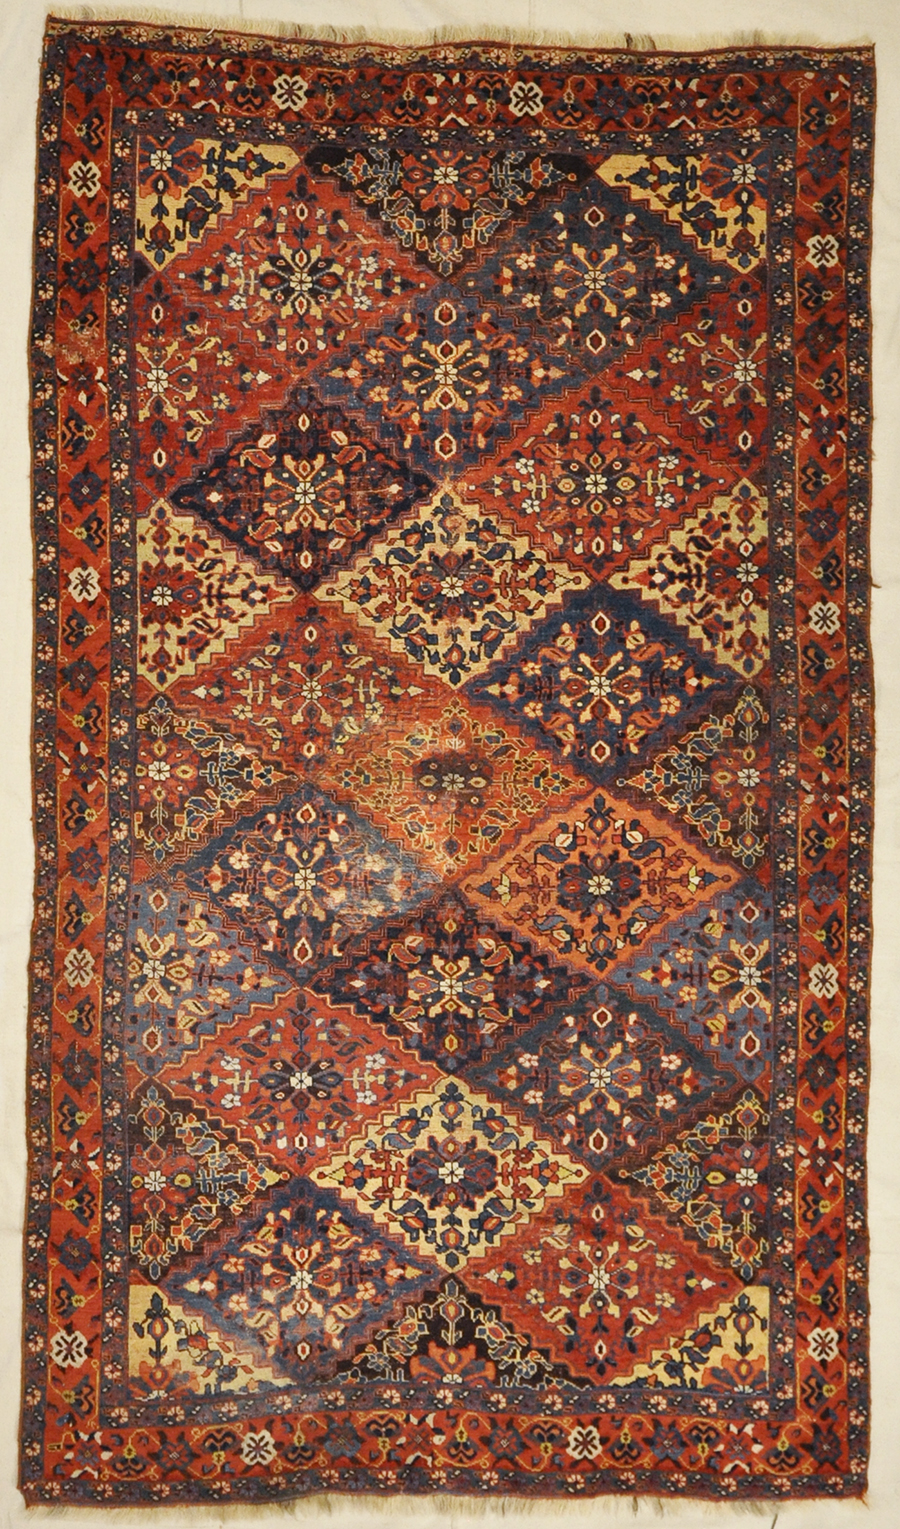 Antique Persian Qashgai Rugs & More